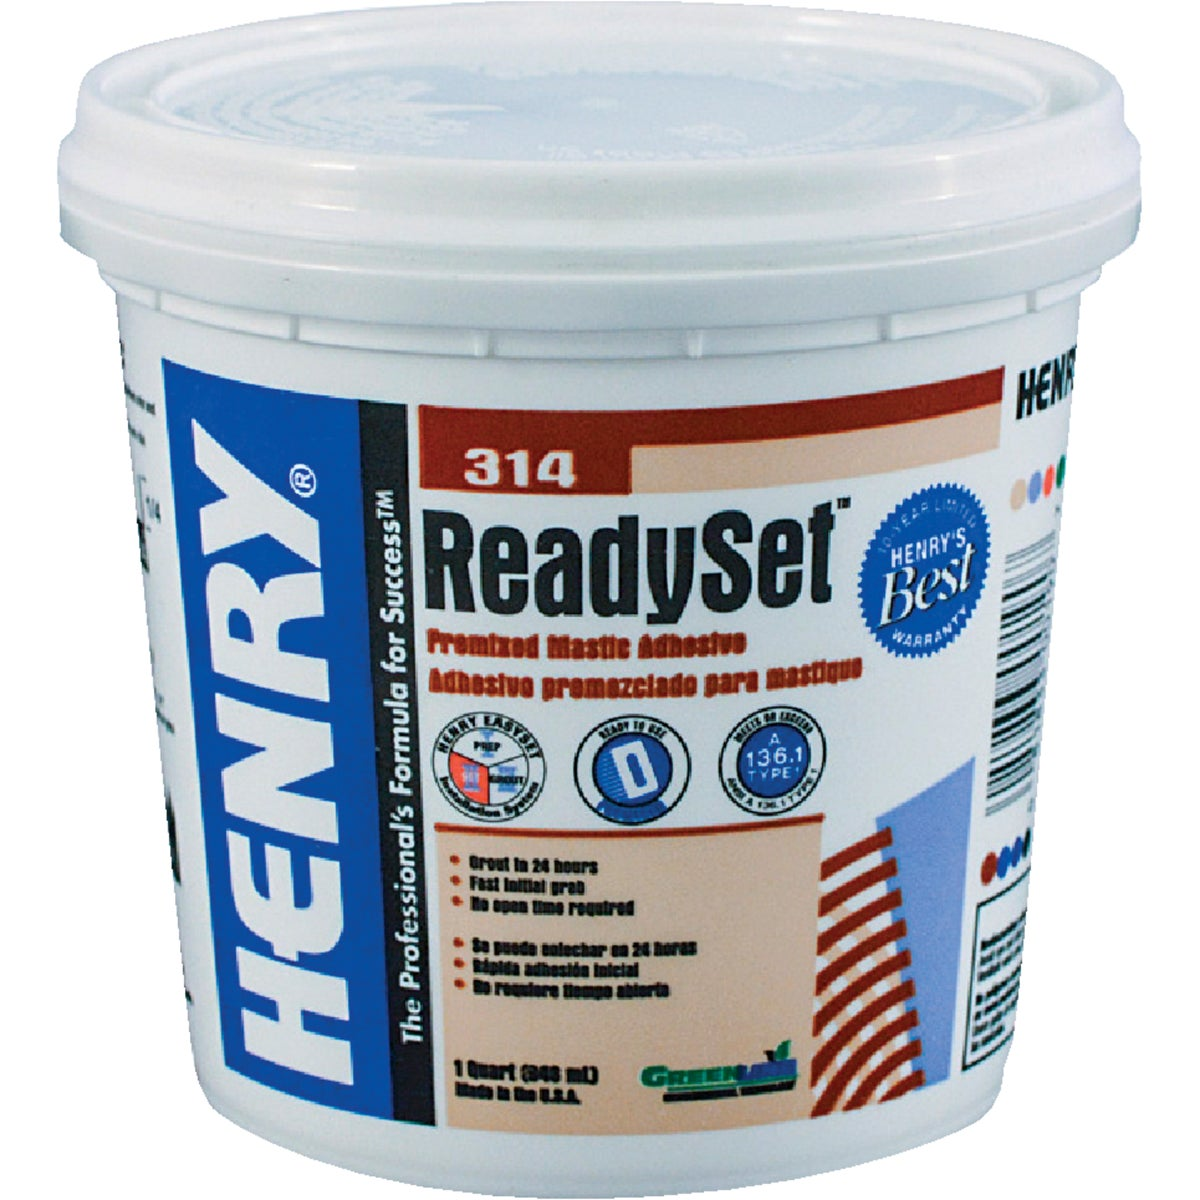 QT H314 CERAMIC ADHESIVE - 12255 by Henry W W Company